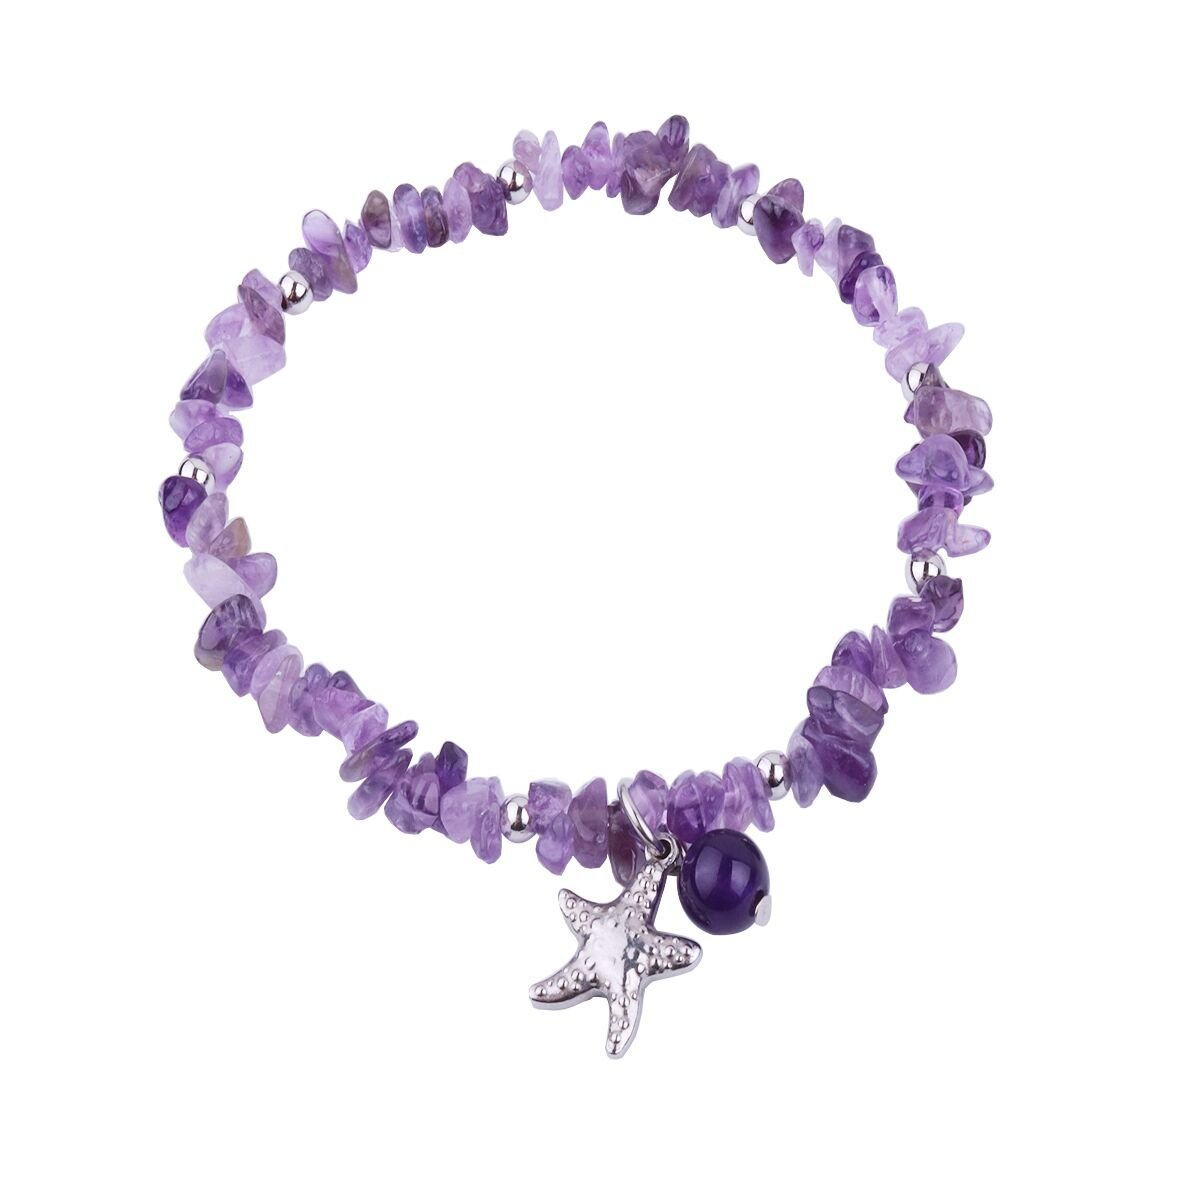 REEBOOOR Starfish Ankle Bracelet Amethyst Healing Stone Stretch Anklet Bracelet Chakra Beach Foot Jewelry for Women Girl (Amethyst with Starfish)